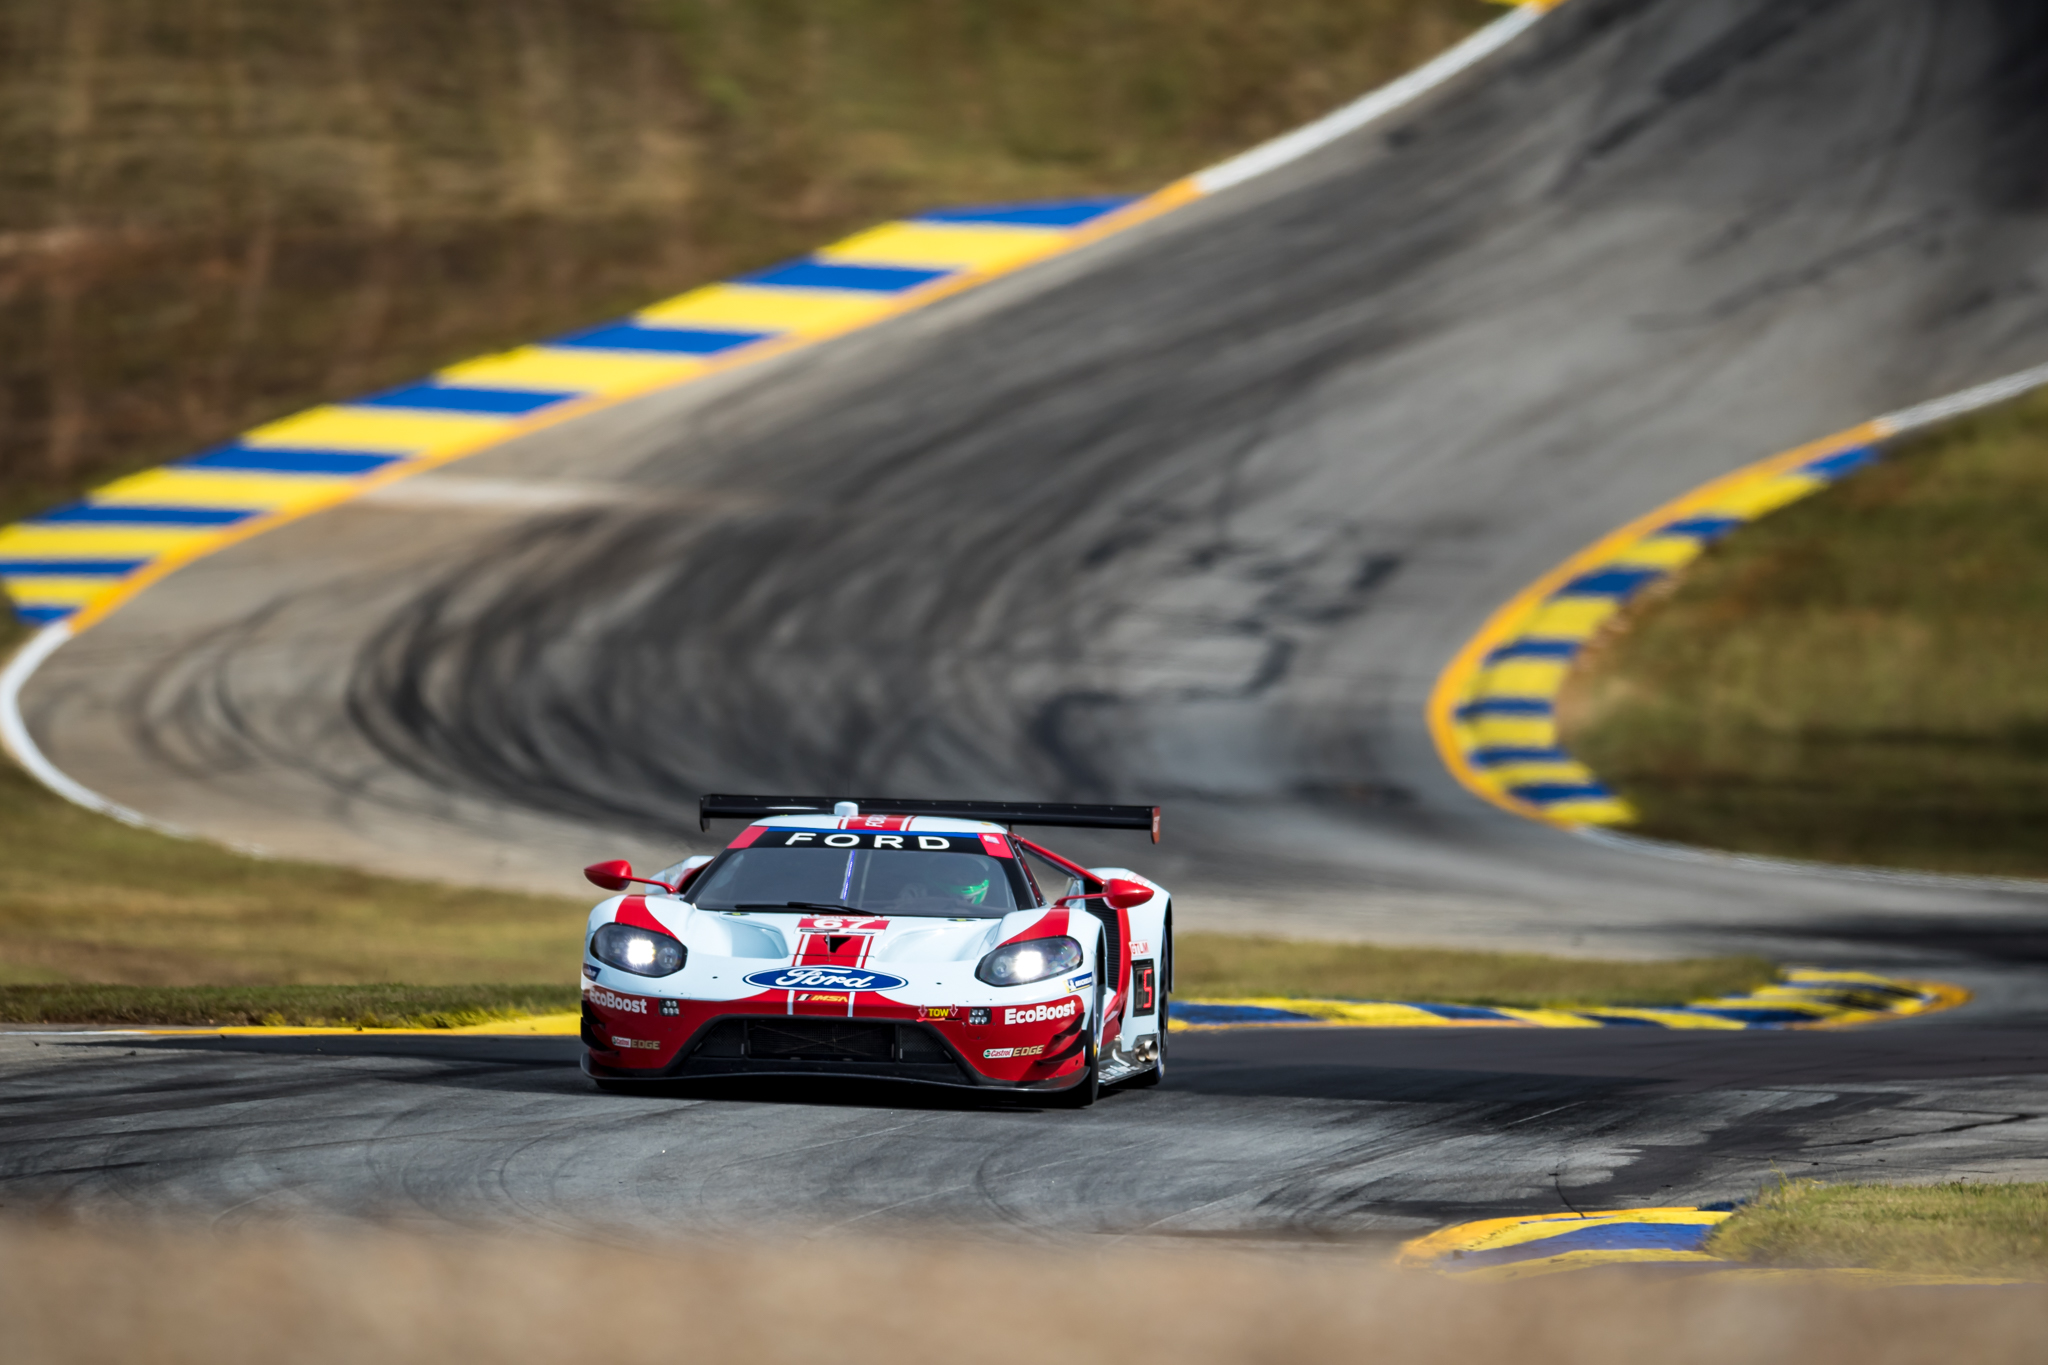 Ford GT - Chip Ganassi Racing - Petit Le Mans 2019